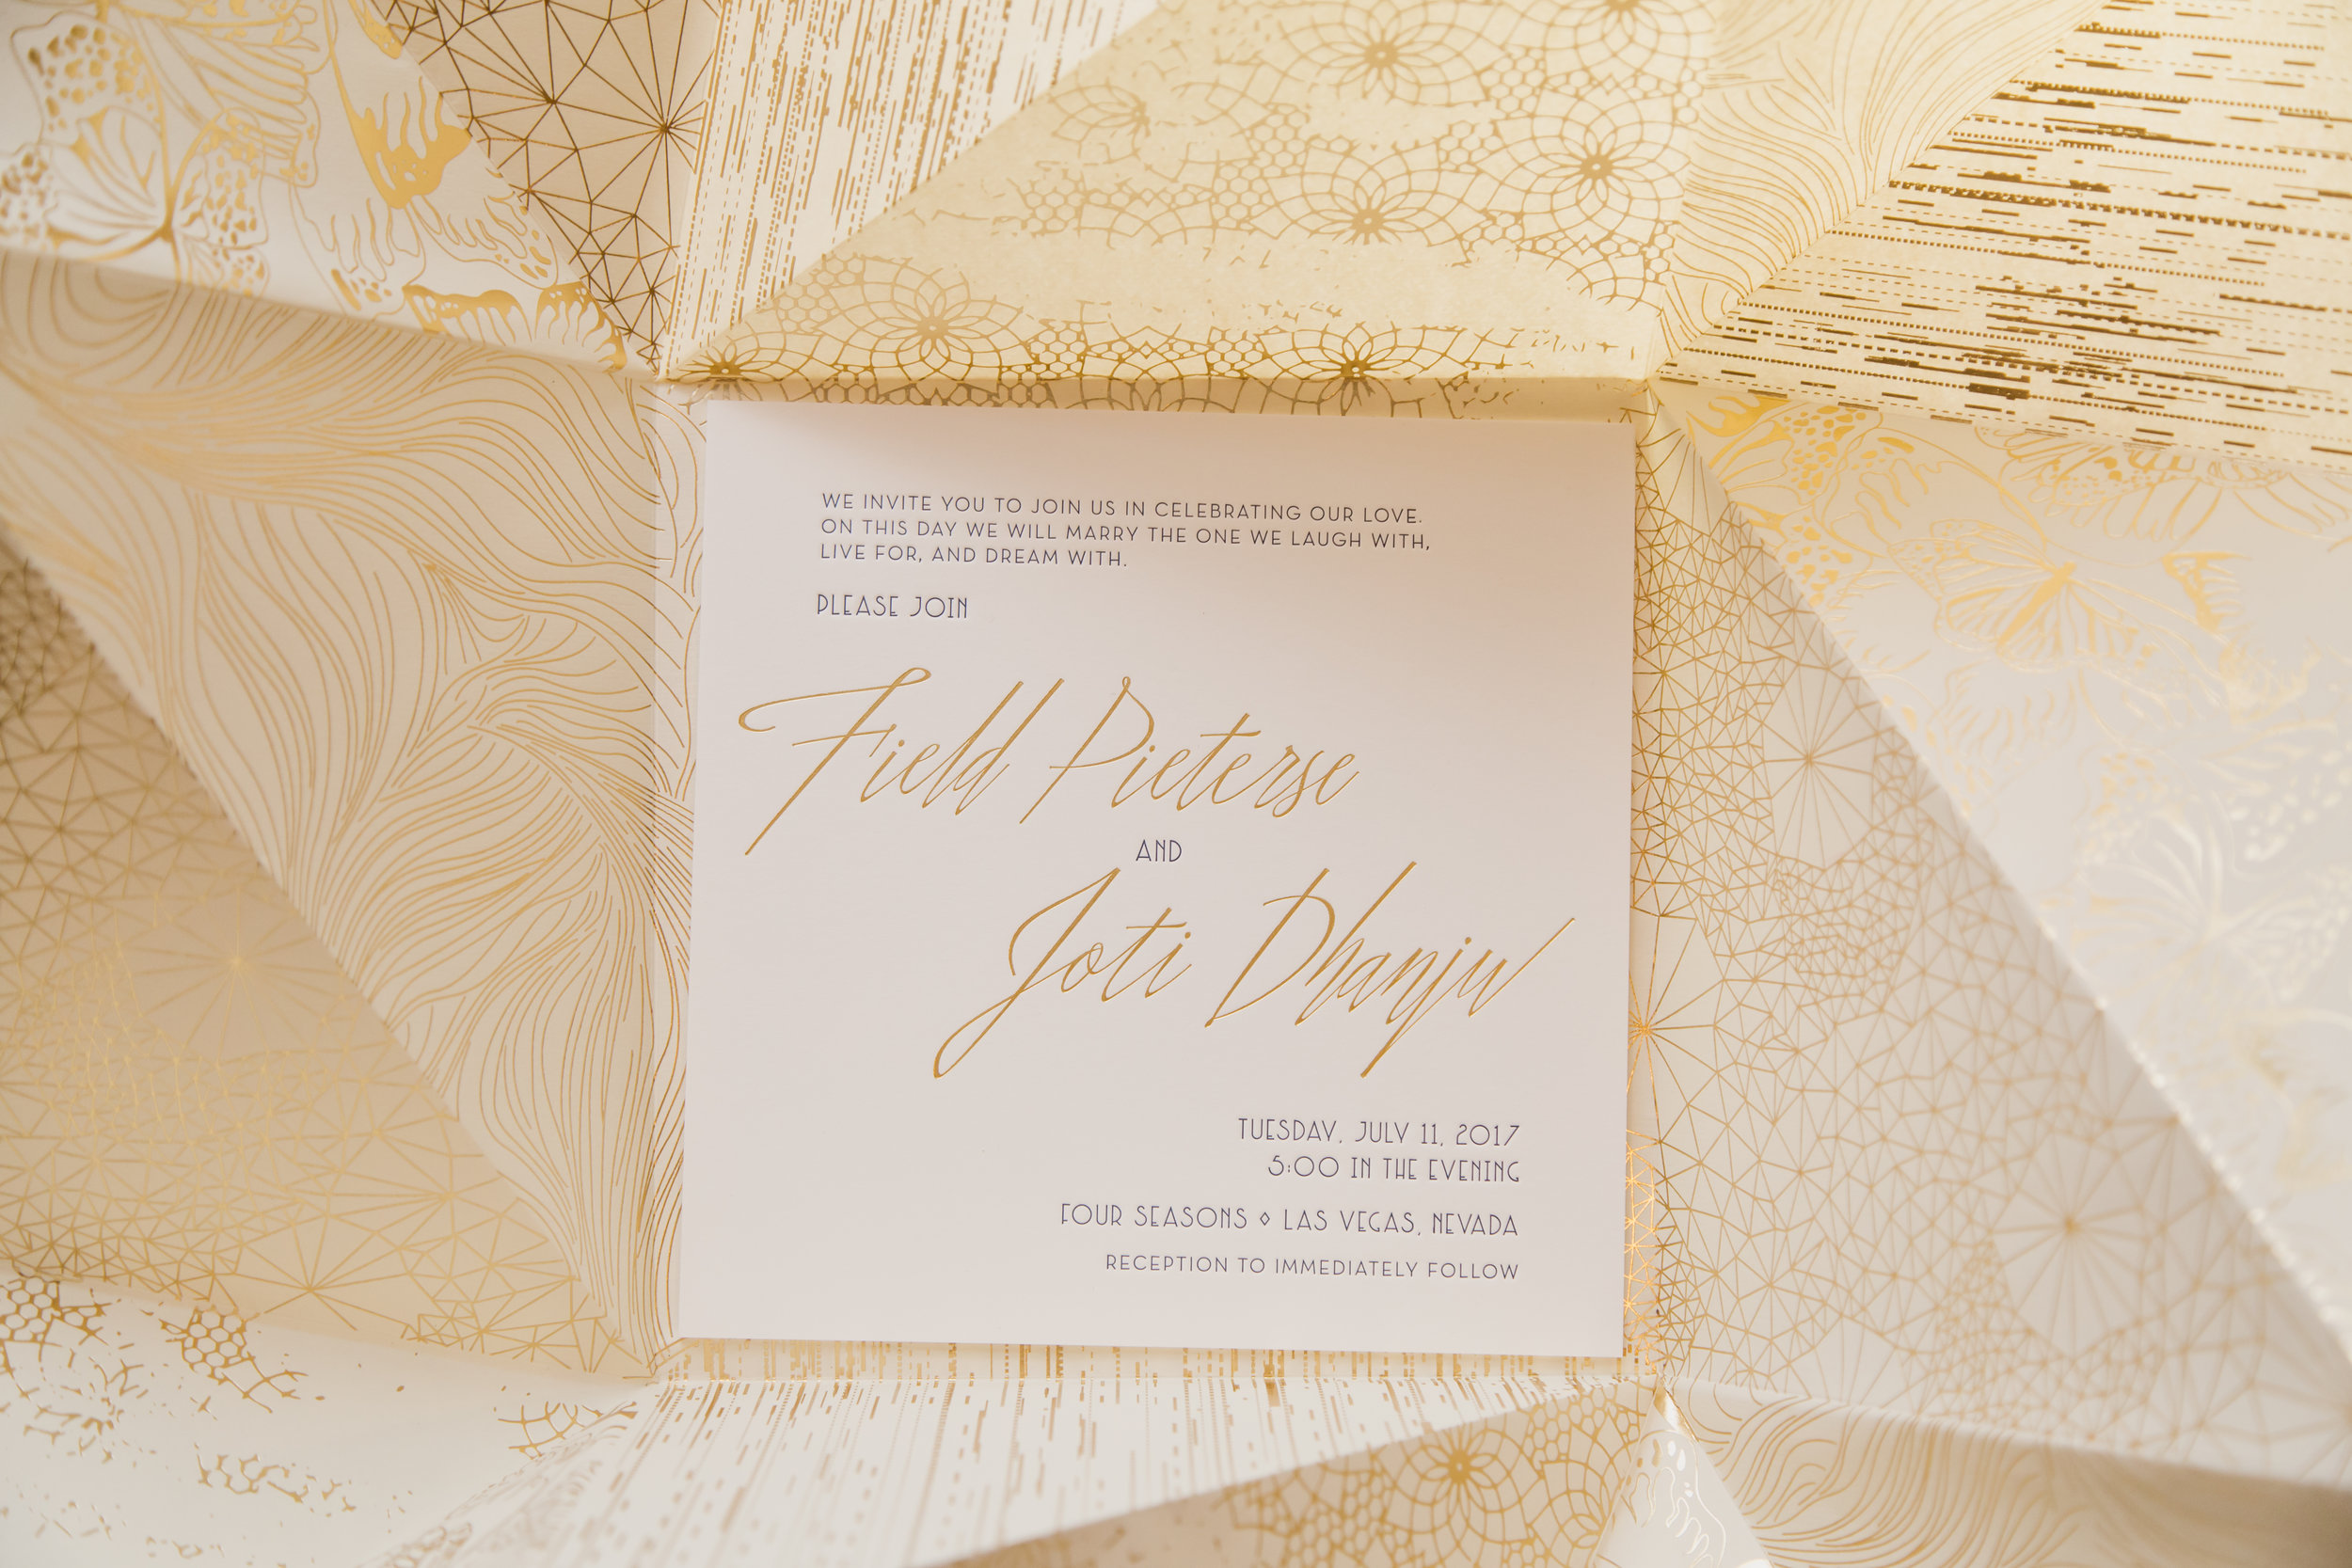 Oragami invitations by Ceci New York.Destination Wedding Planner  Andrea Eppolito ·Photos by  Adam Frazier Photography ·Floral and Decor by  Destinations by Design · Lighting by  LED Unplugged ·Venue · Invitations  Ceci New York  · Menus by  Alligator Soup